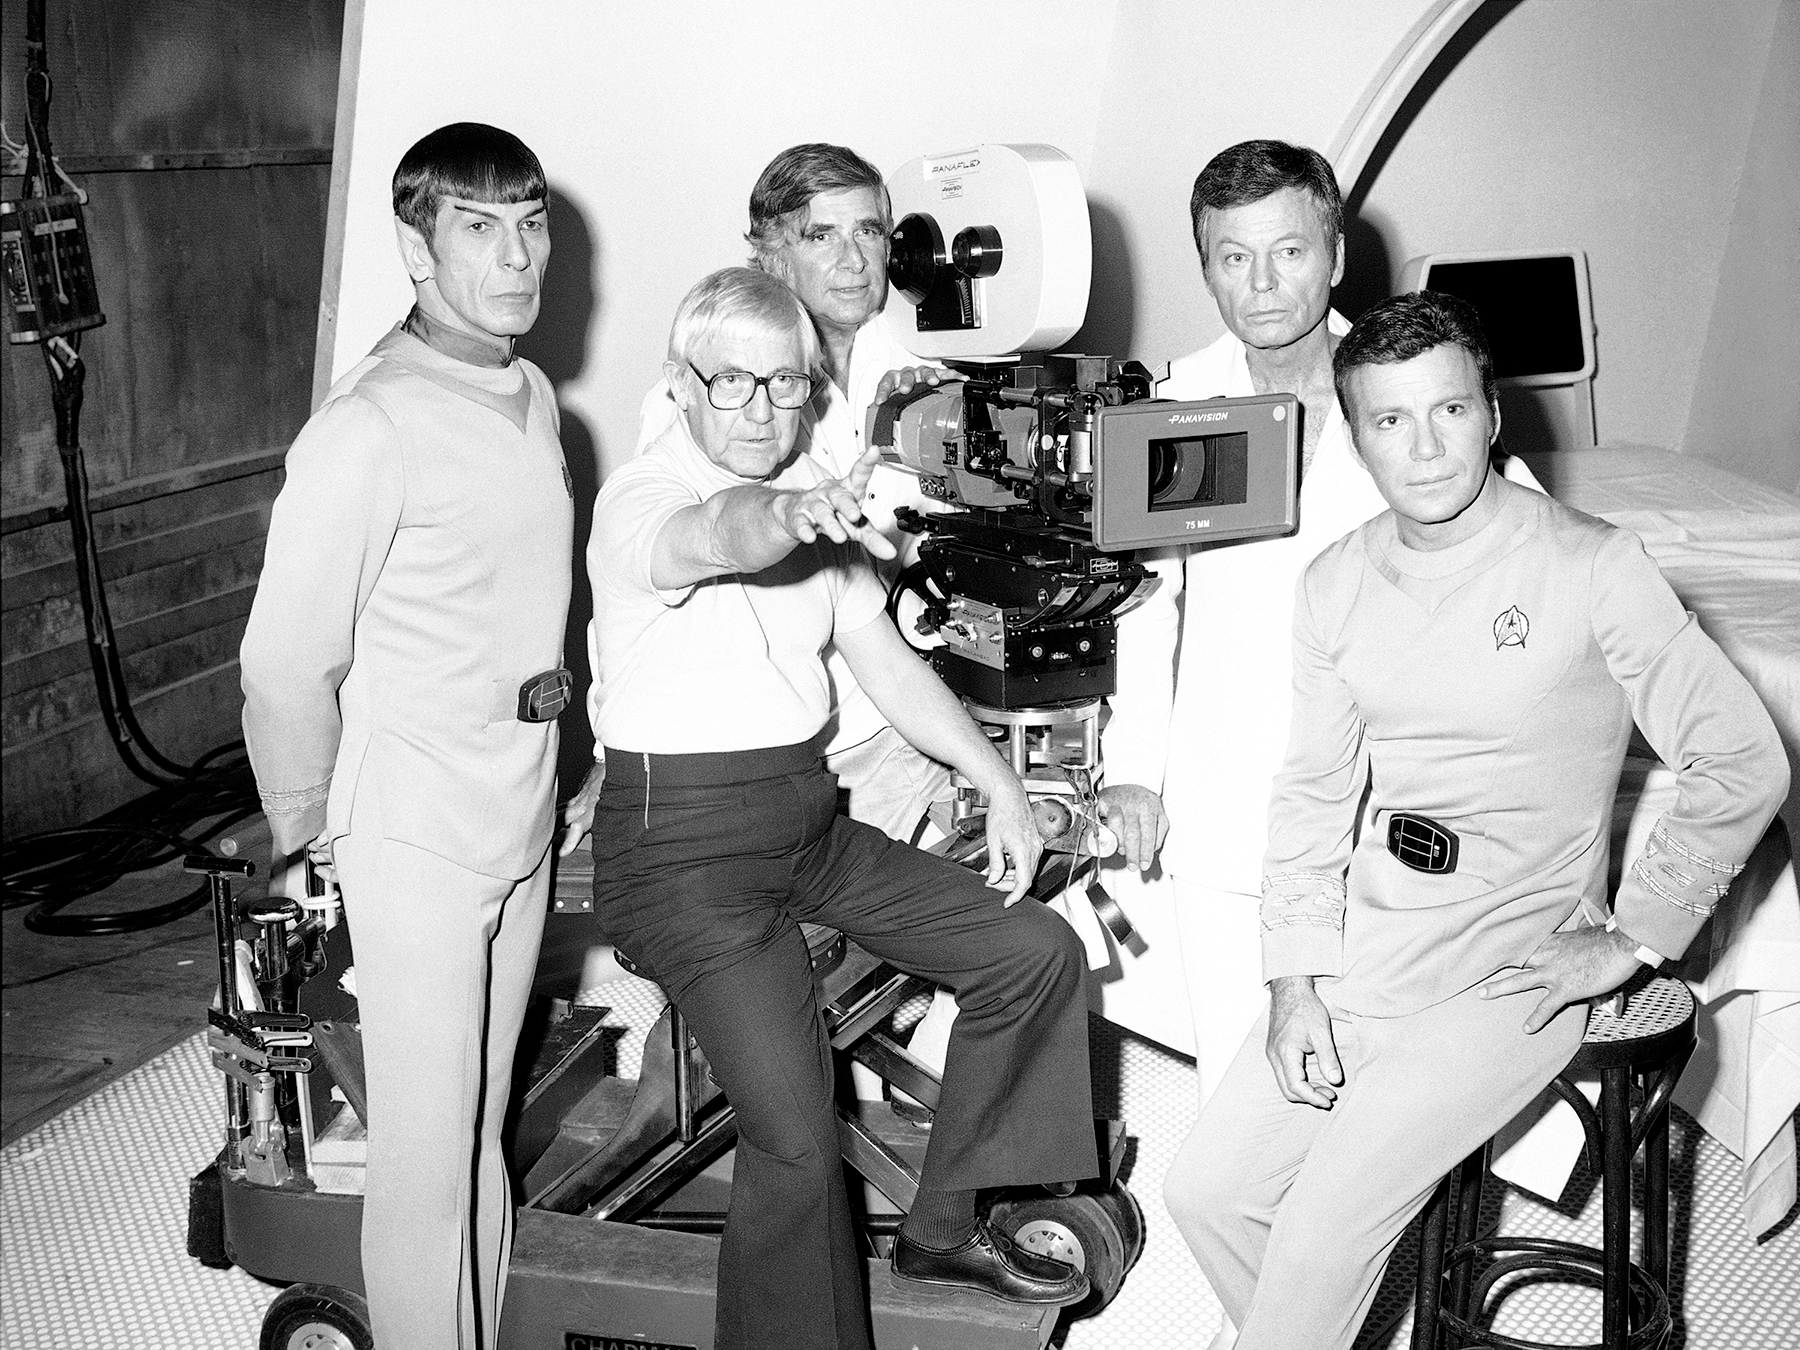 Nimoy, director Robert Wise, producer Gene Roddenberry, Deforest Kelley and William Shatner on the set of Star Trek: The Movie